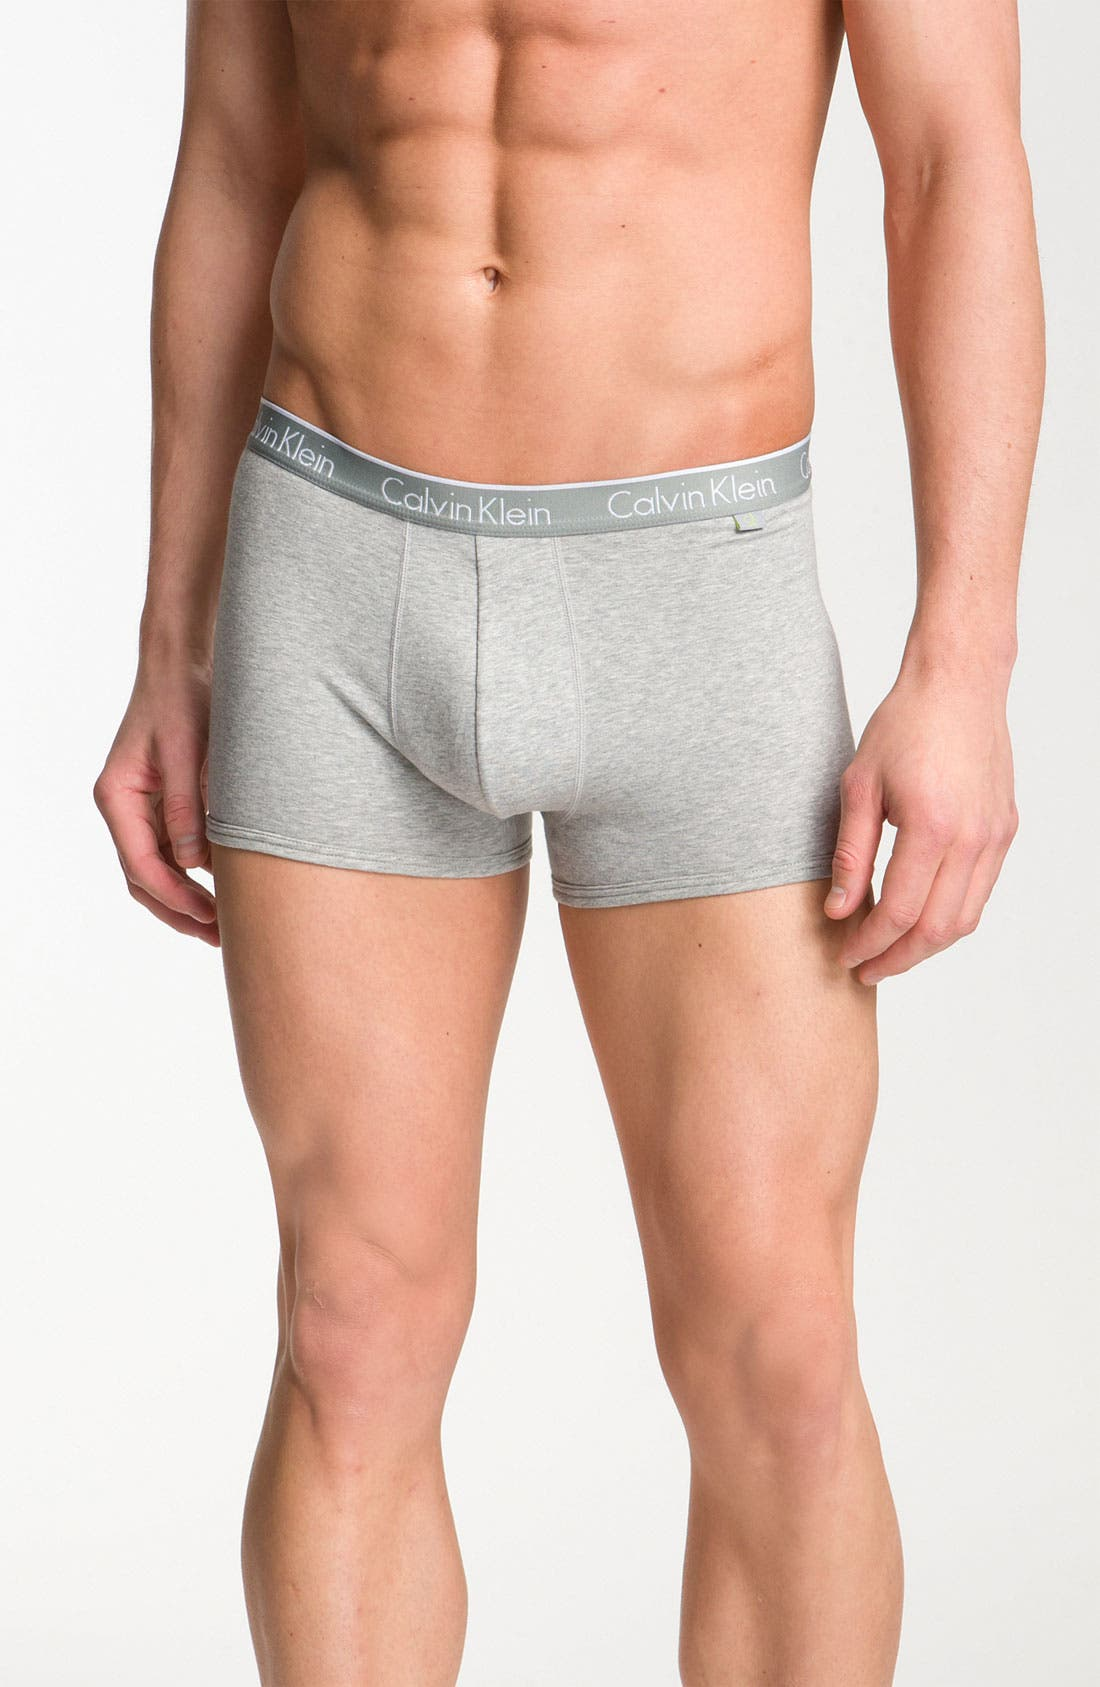 Main Image - Calvin Klein 'ck one' Trunks (Limited Edition)(Online Only)